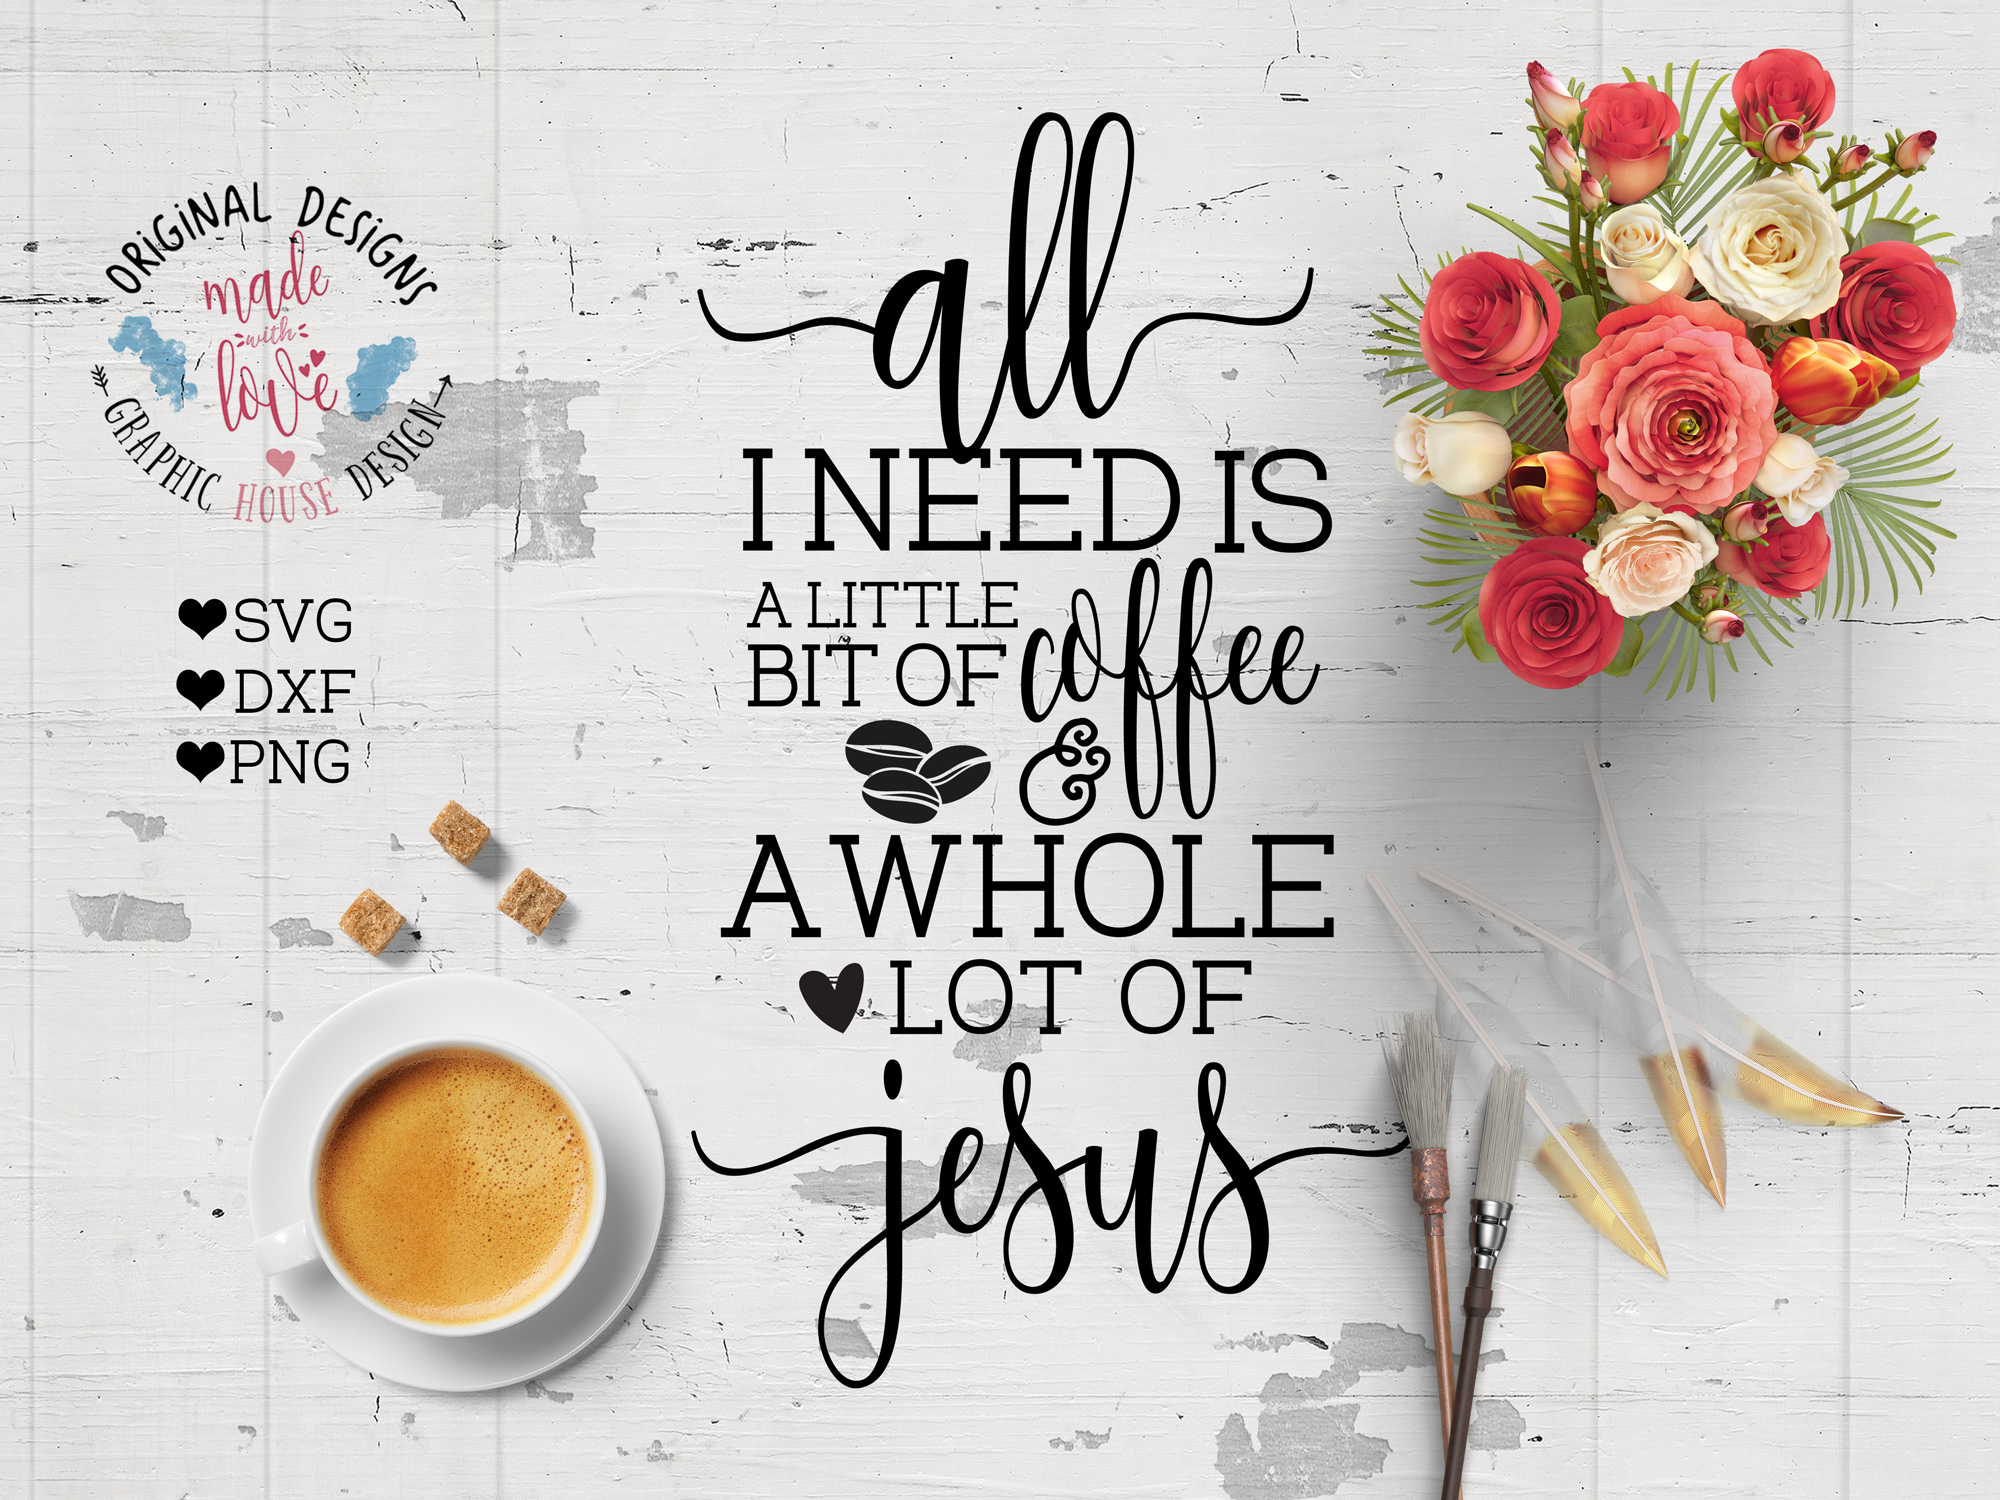 All I need is a little bit of coffee and a whole lot of Jesus Cutting File (SVG, DXF, PNG) example image 1